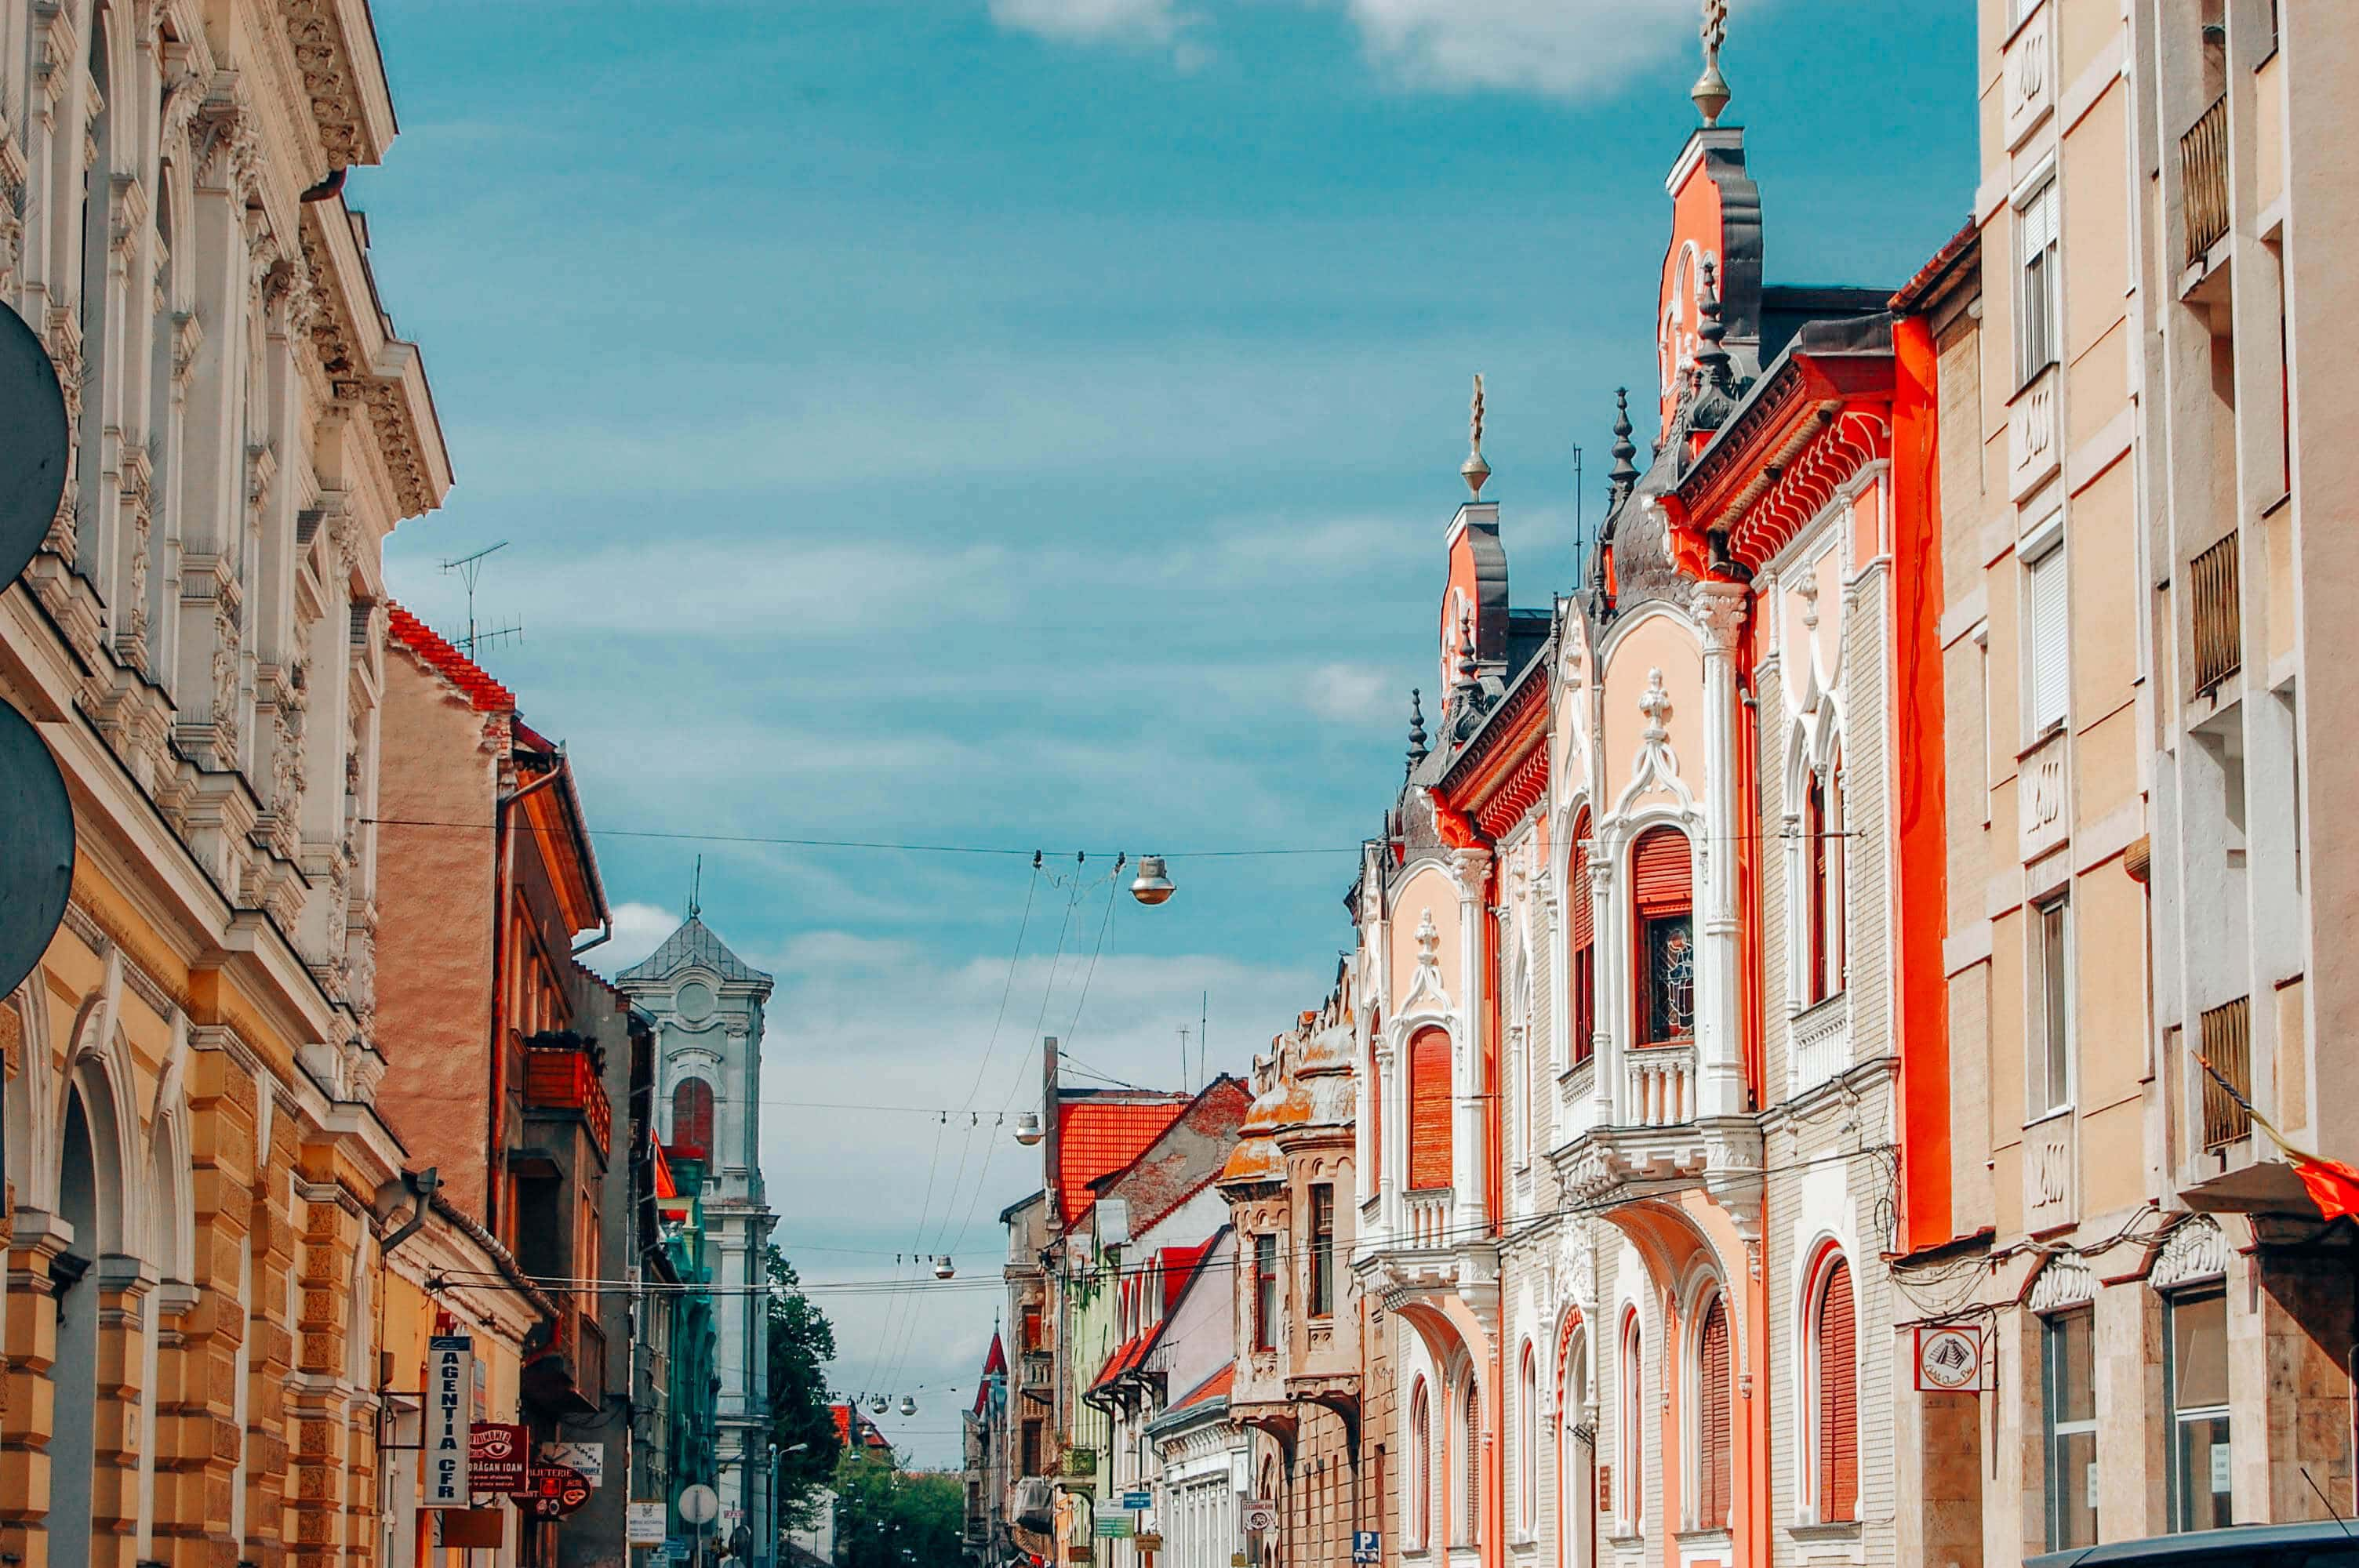 Oradea, Romania - One of the most underrated cities in the world + why you should add it to your bucket list low!